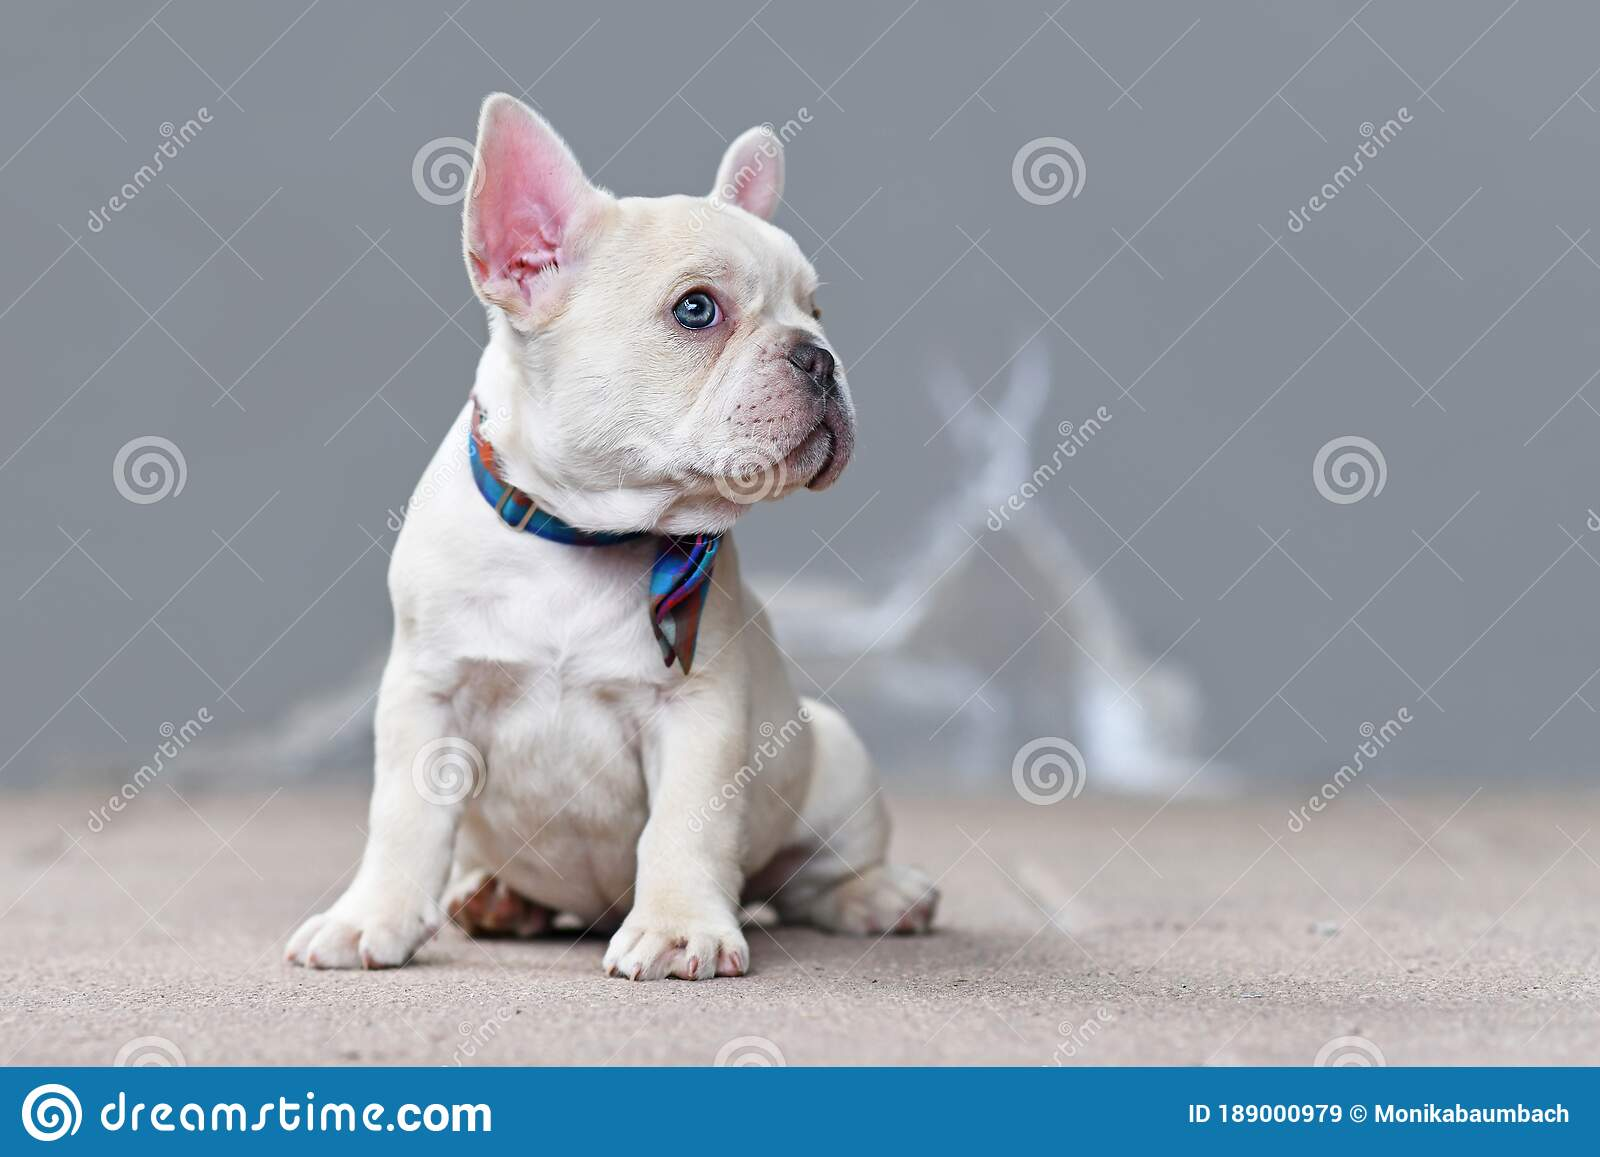 Small Cream White Colored French Bulldog Dog Puppy With Big Blue Eyes Wearing A Bow Tie Stock Image Image Of French Eyes 189000979